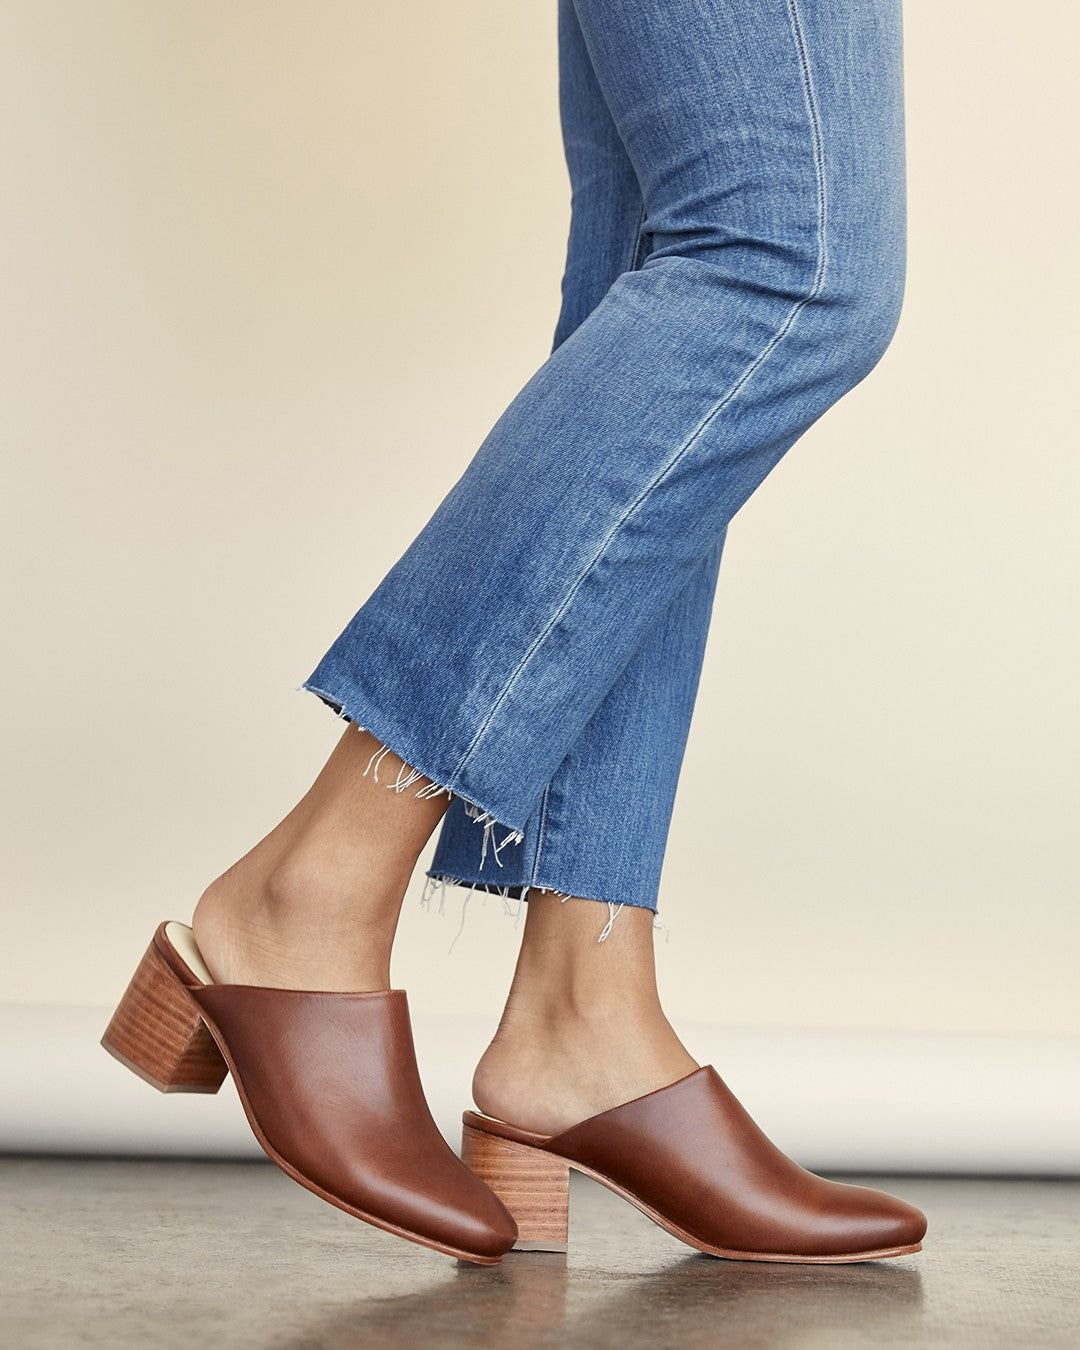 Nisolo women's Paloma Mule in brandy | Ethically Made